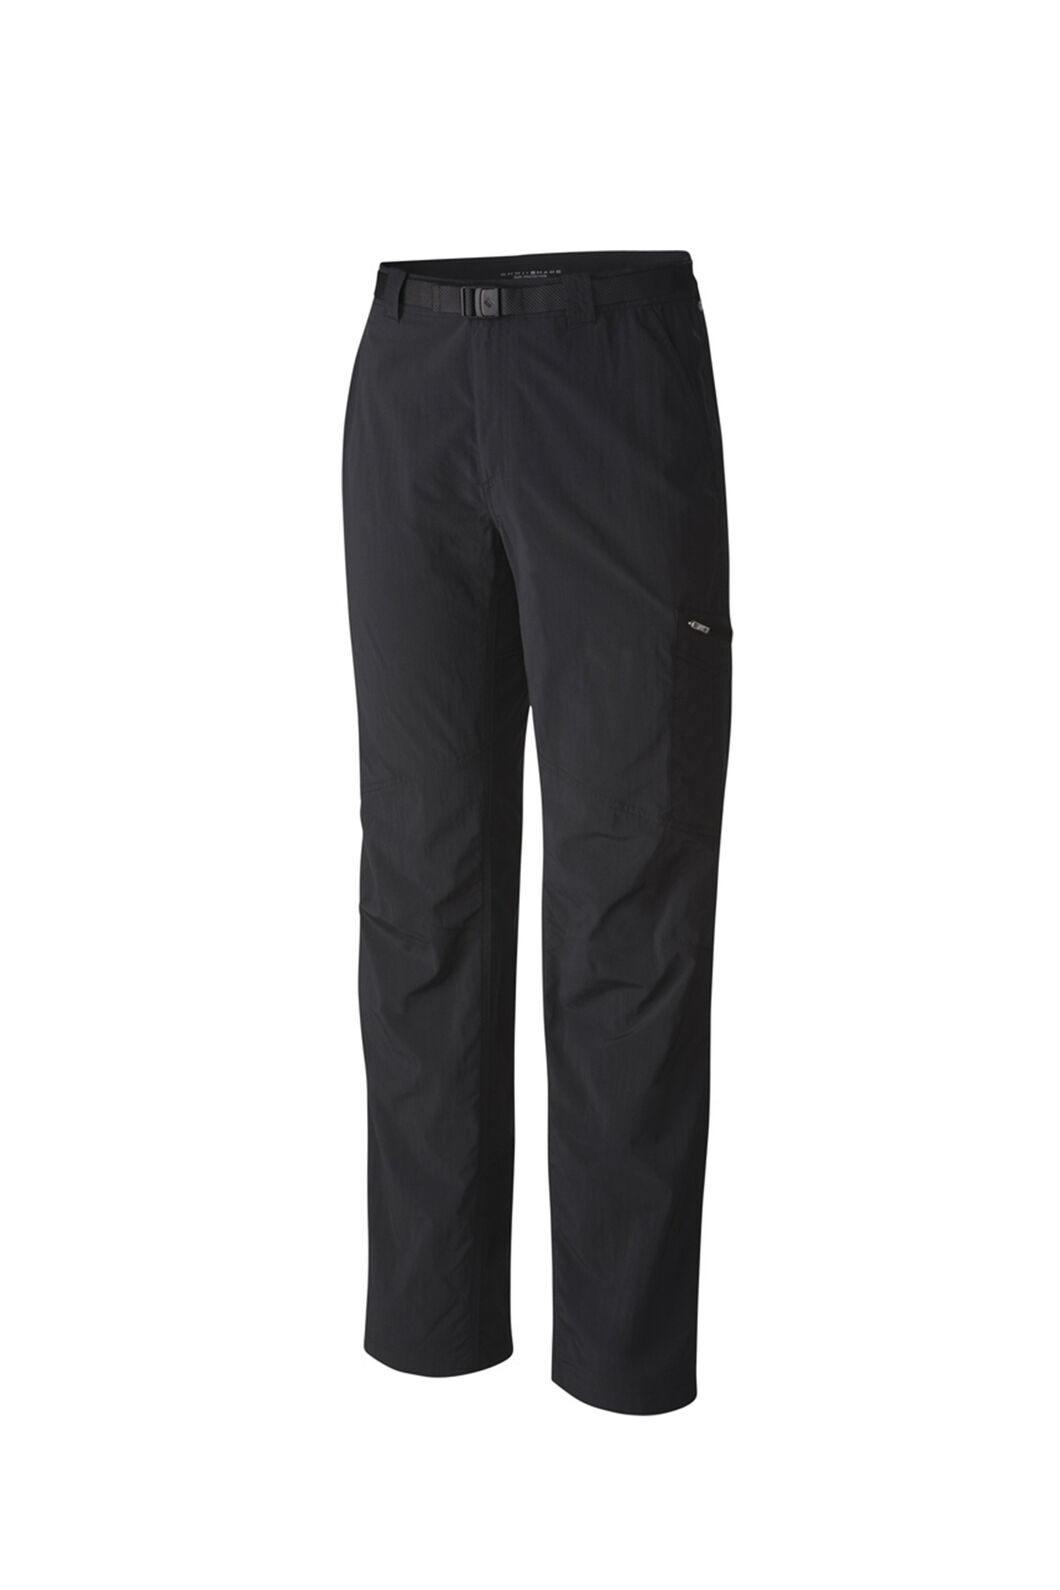 Columbia Men's  Ridge Cargo Pant, Black, hi-res